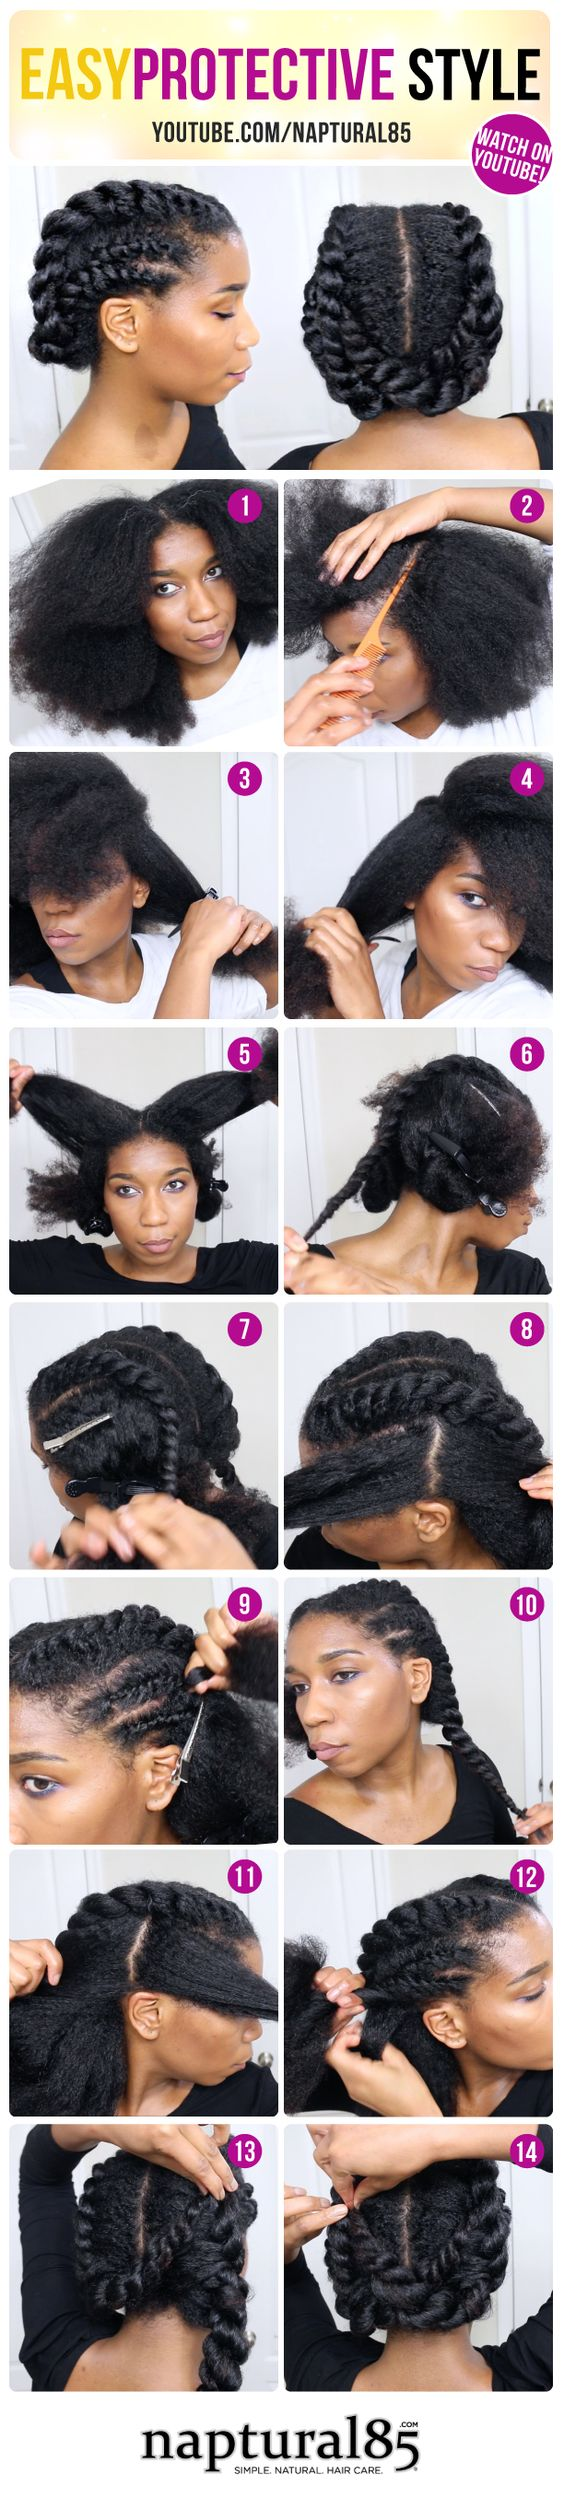 Naptural85 - Natural Hair Care Tips - Blog Content - Edgy Twisted Office Gym…